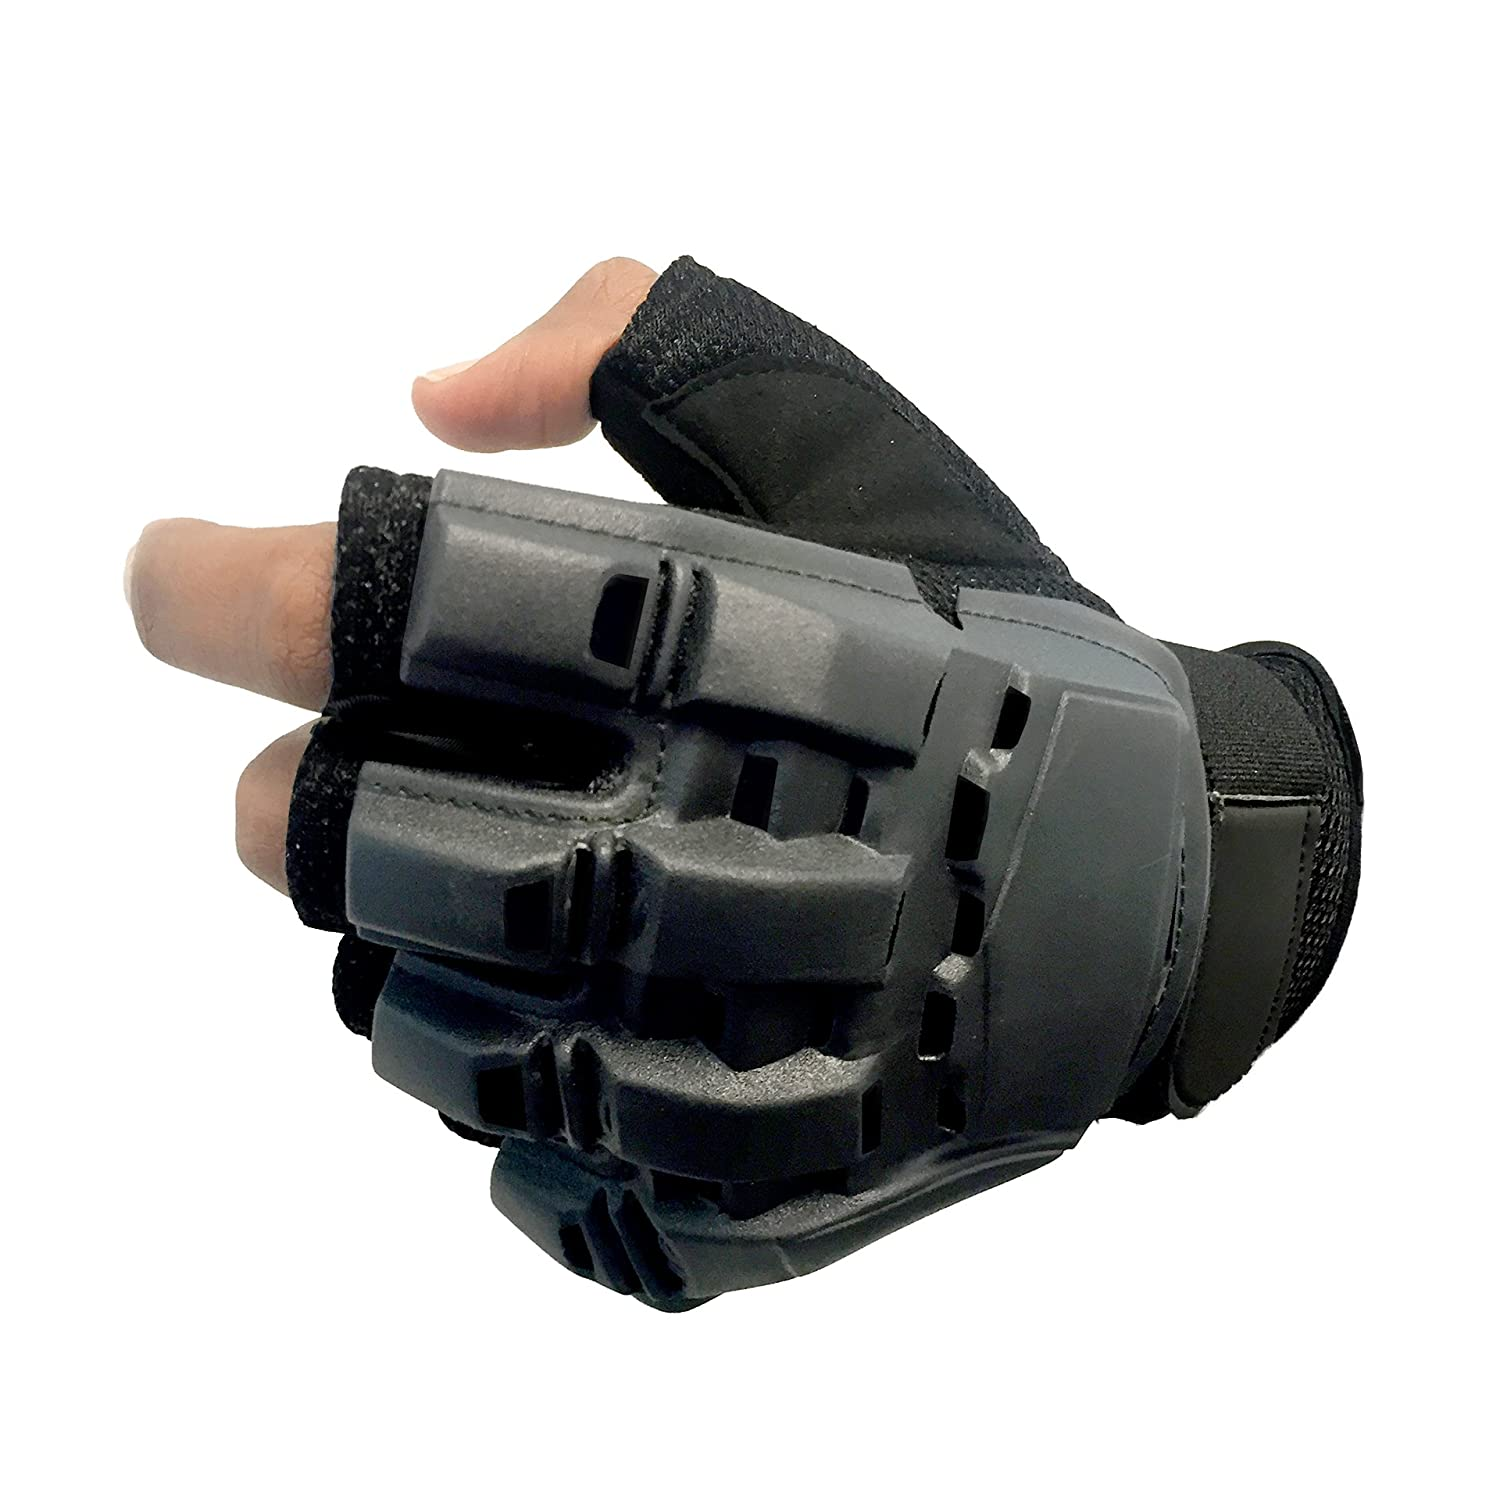 Sportly Tactical Fingerless Gloves